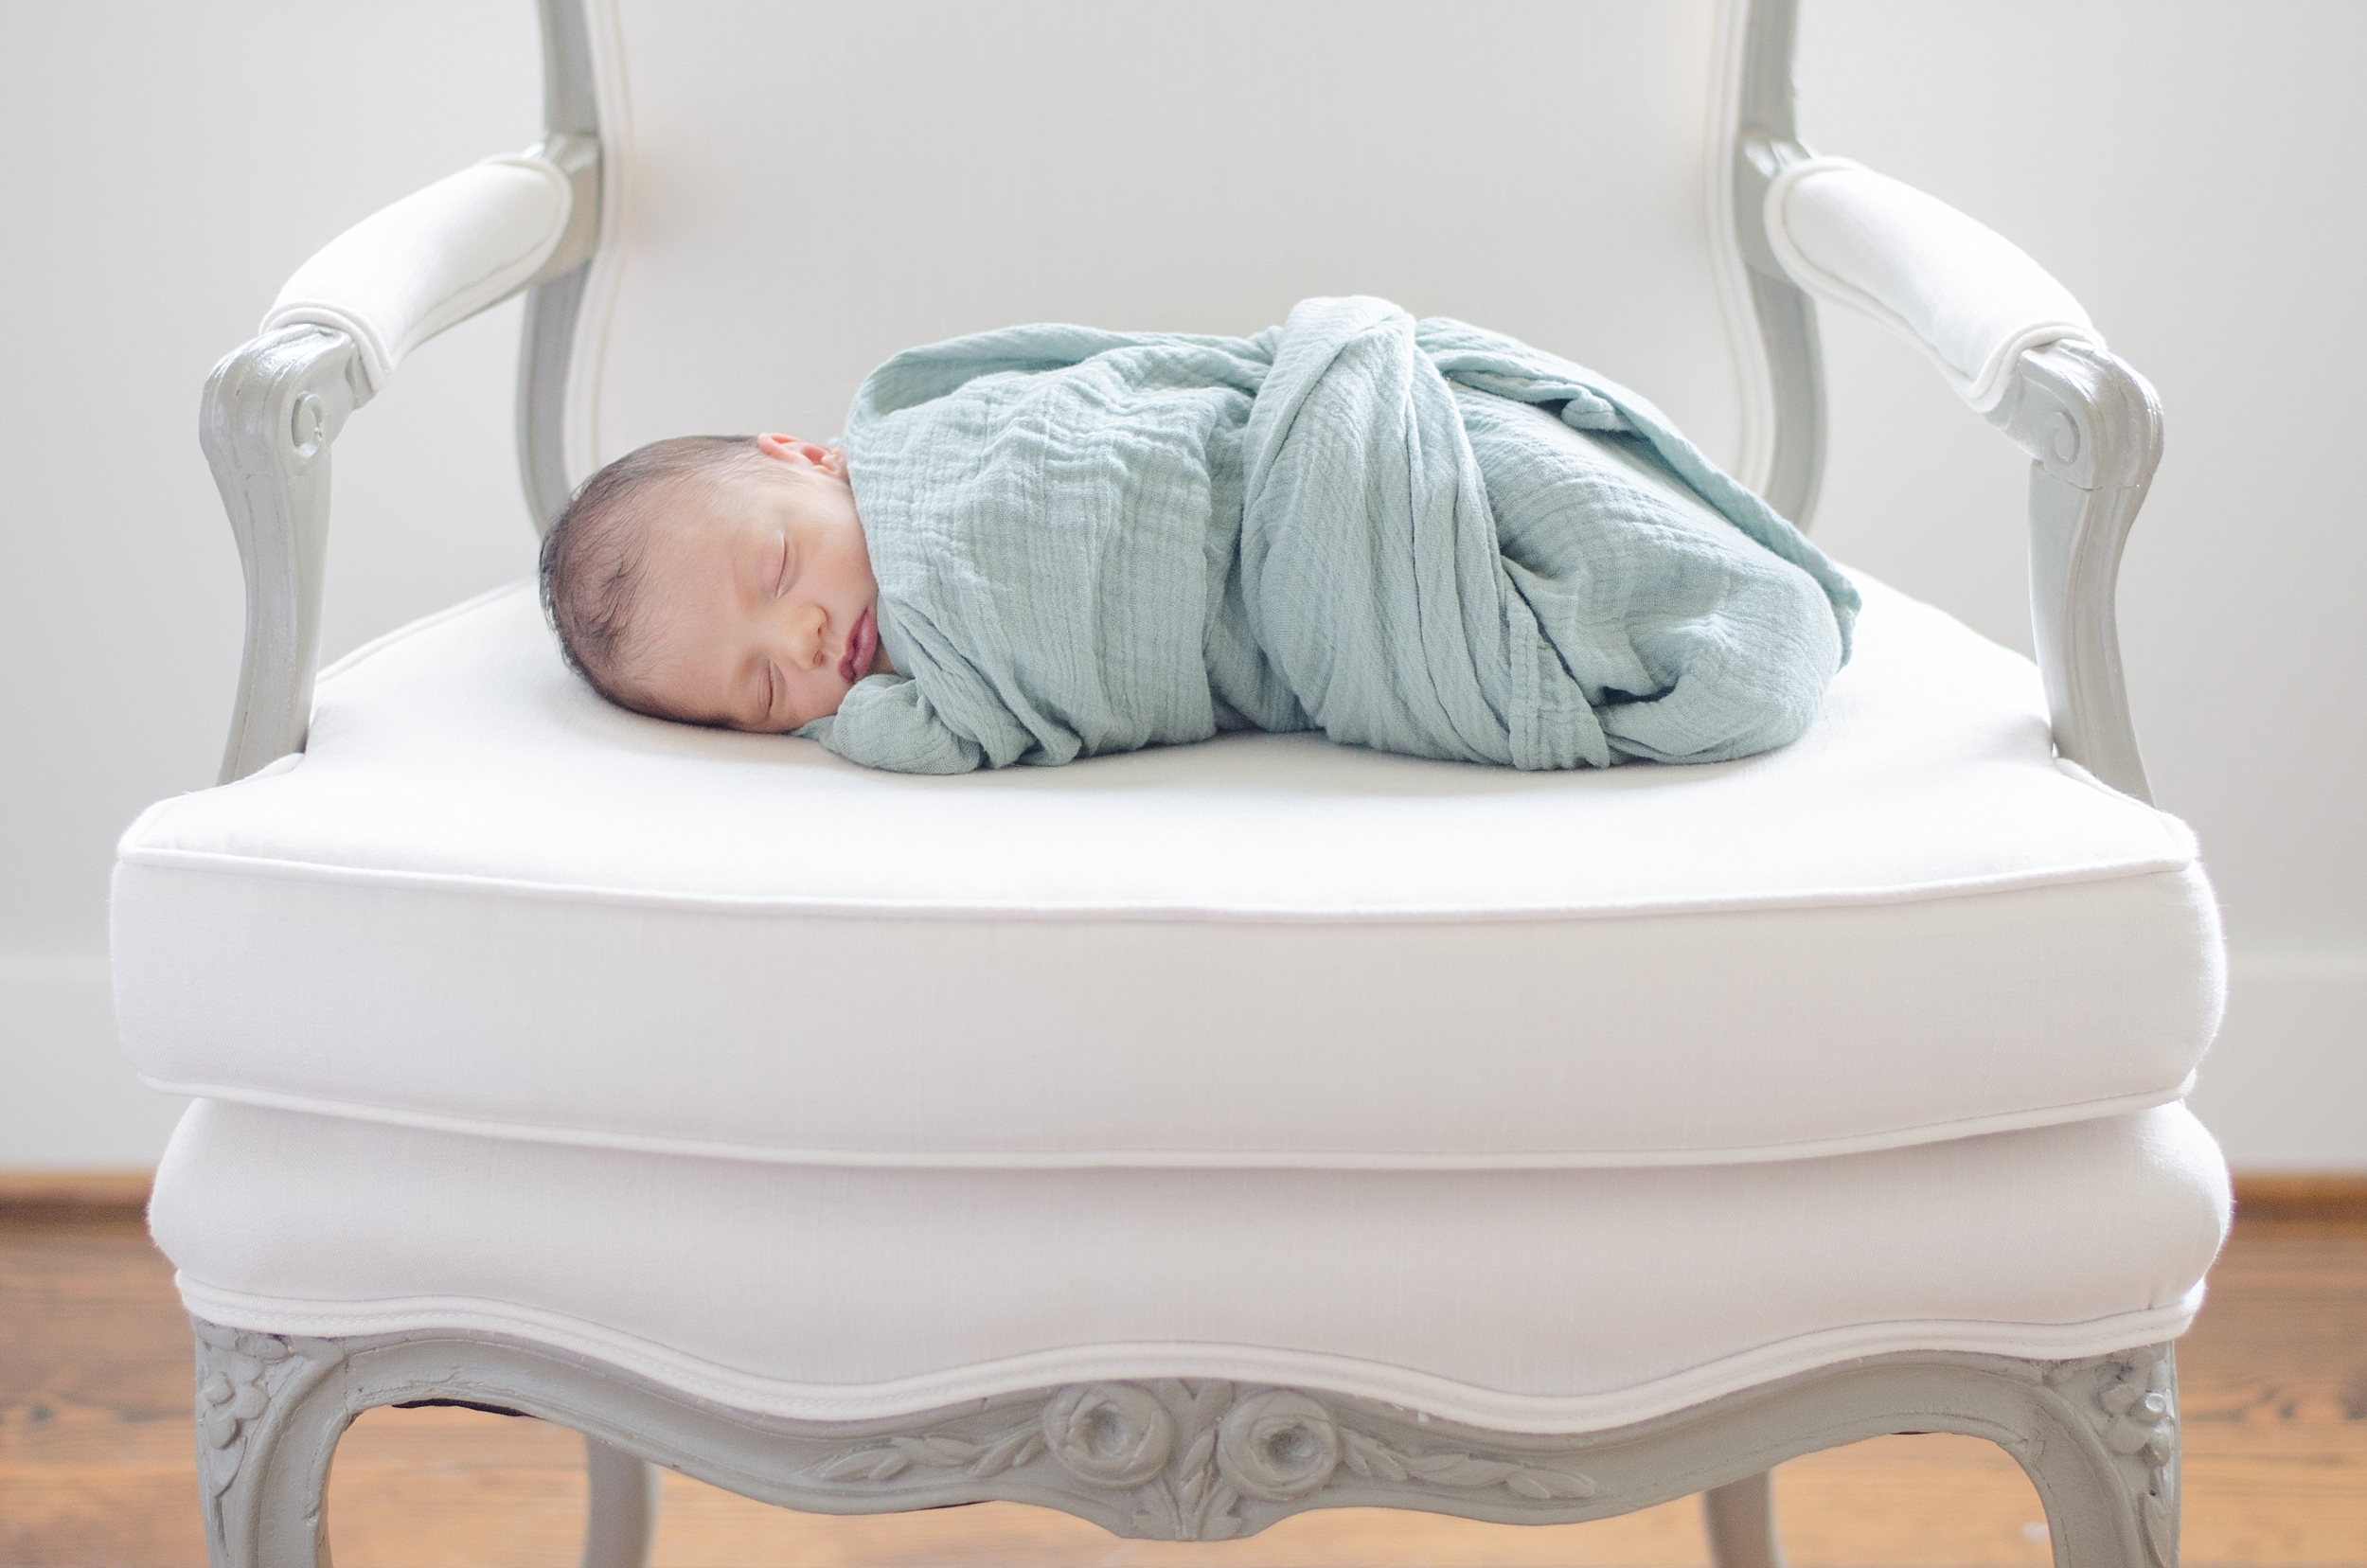 Landon-Schneider-Photography-Newborn-Session-Houston-Texas_0128.jpg